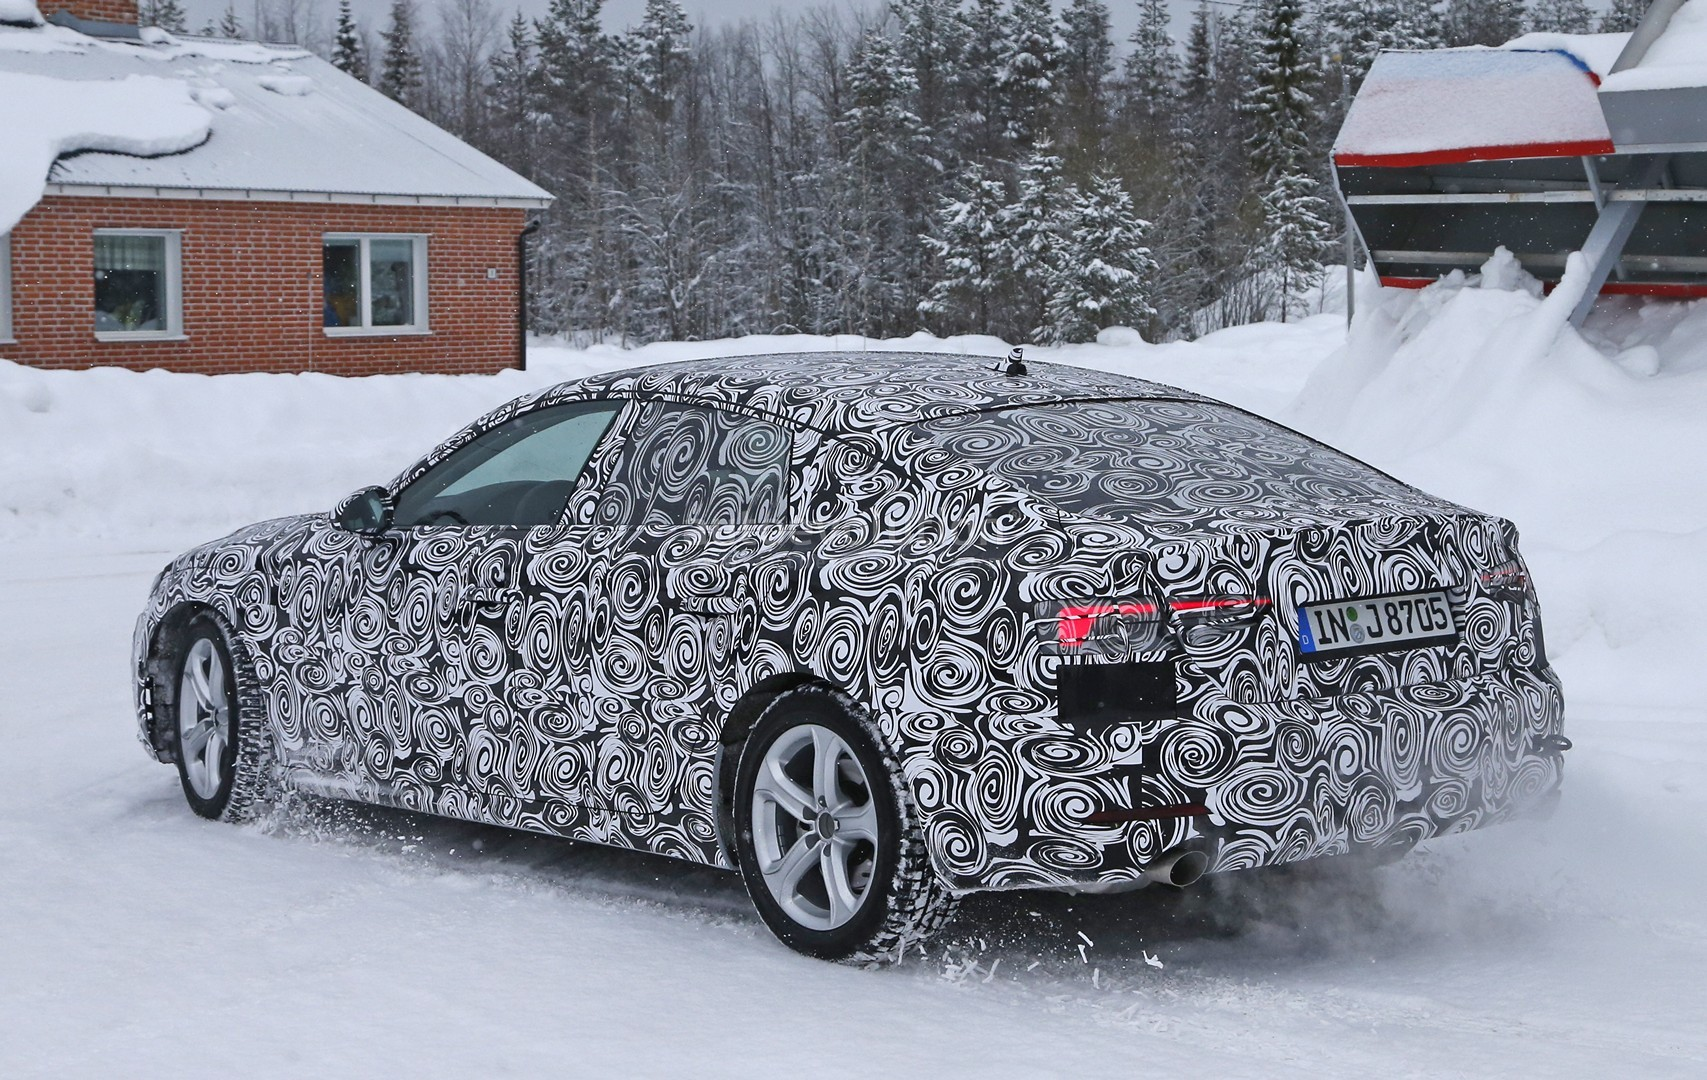 2017 Audi S5 4 Door >> All-New 2017 Audi A5 Sportback 4-Door Coupe Spied for the First Time - autoevolution